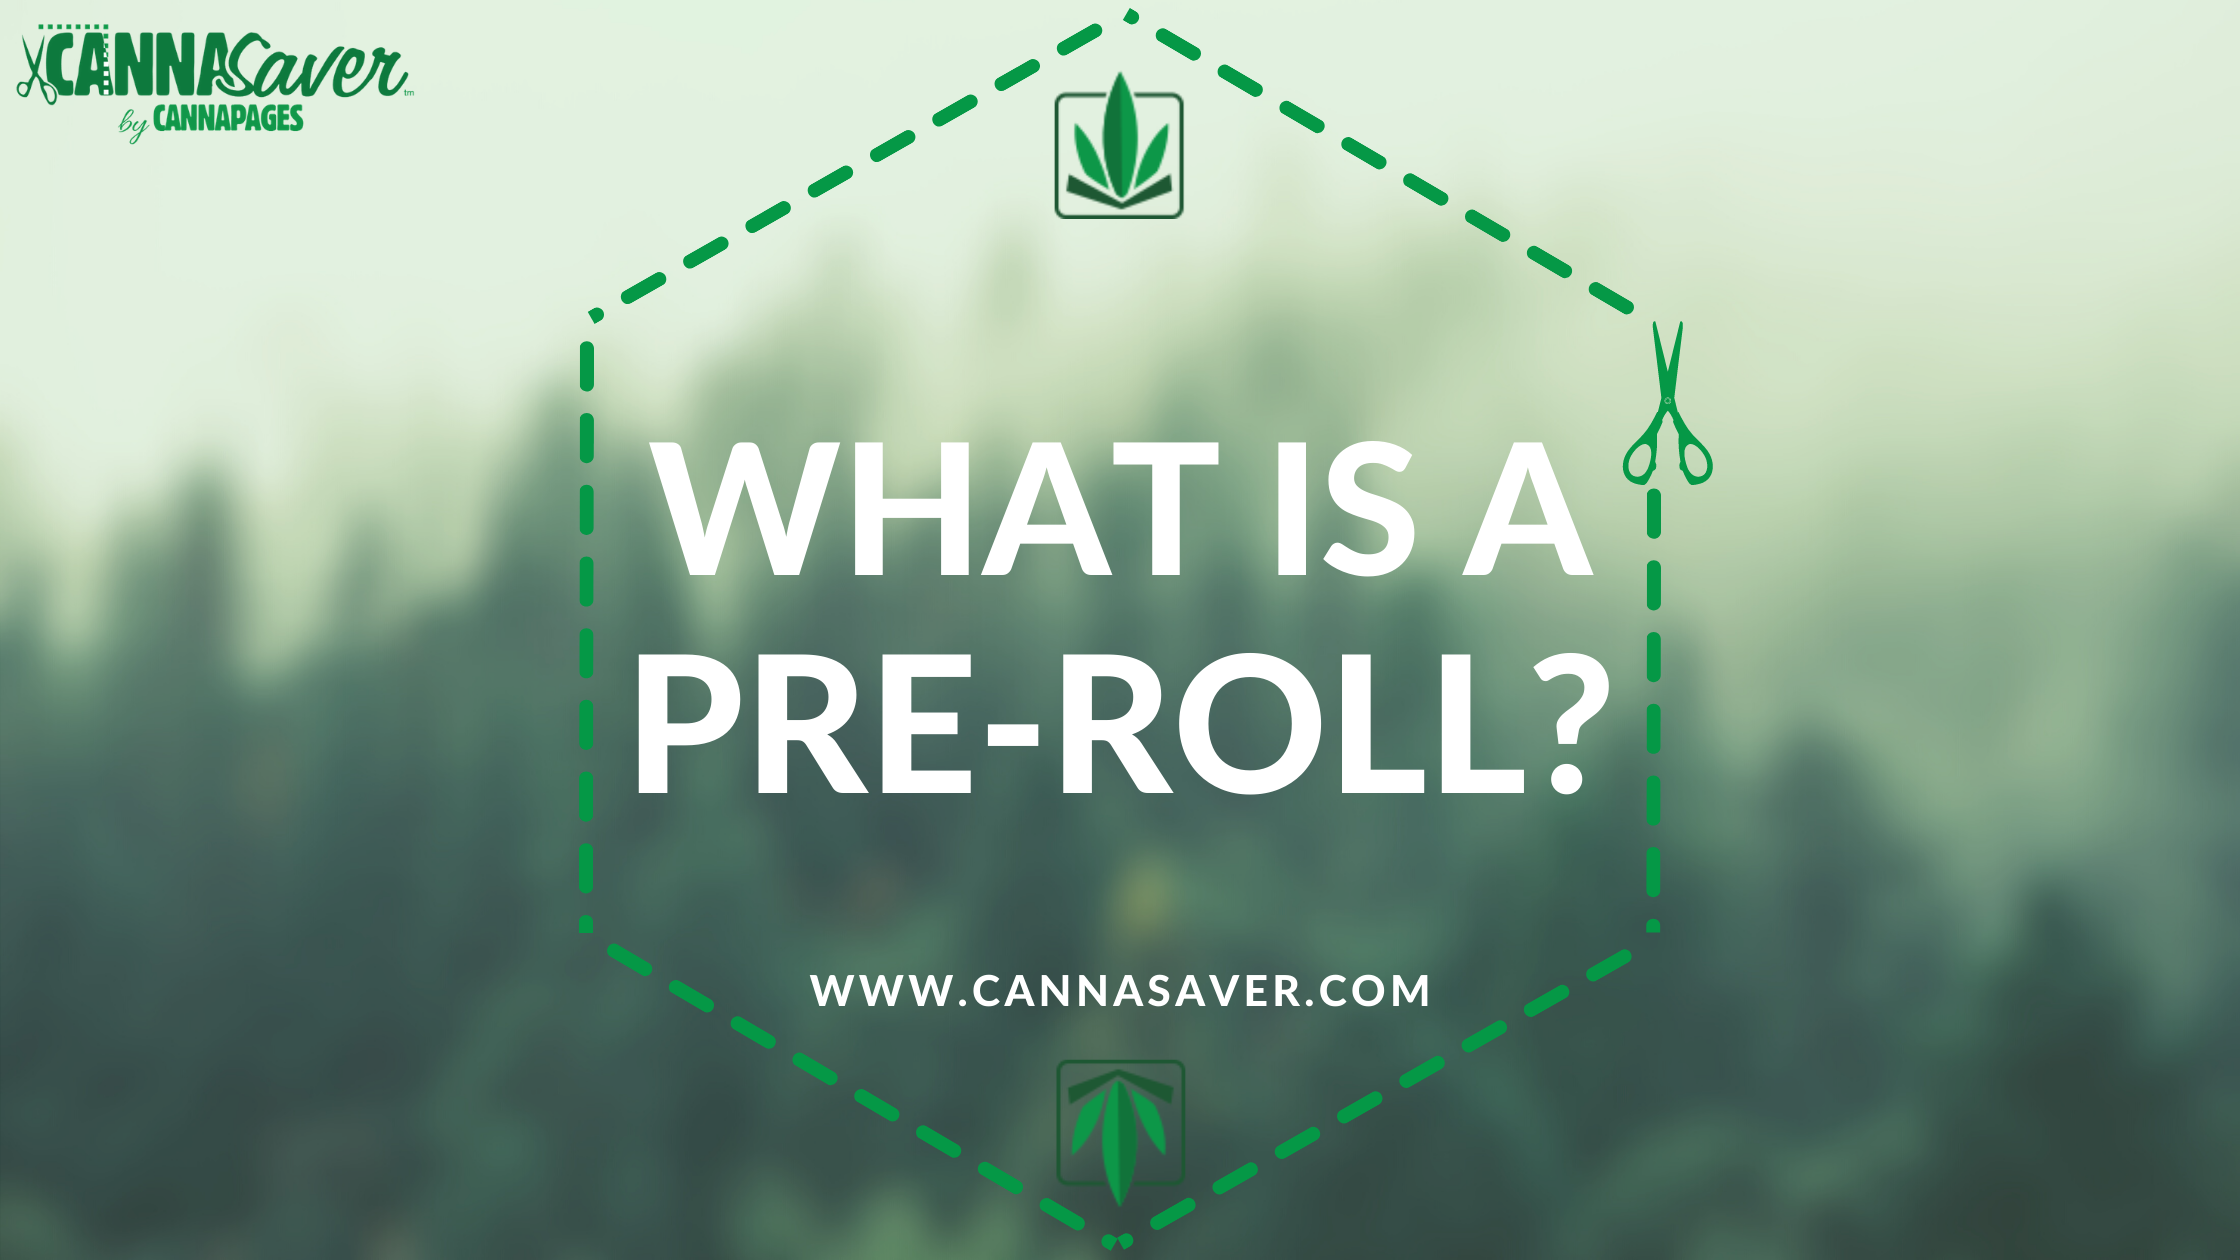 What Is a Preroll?